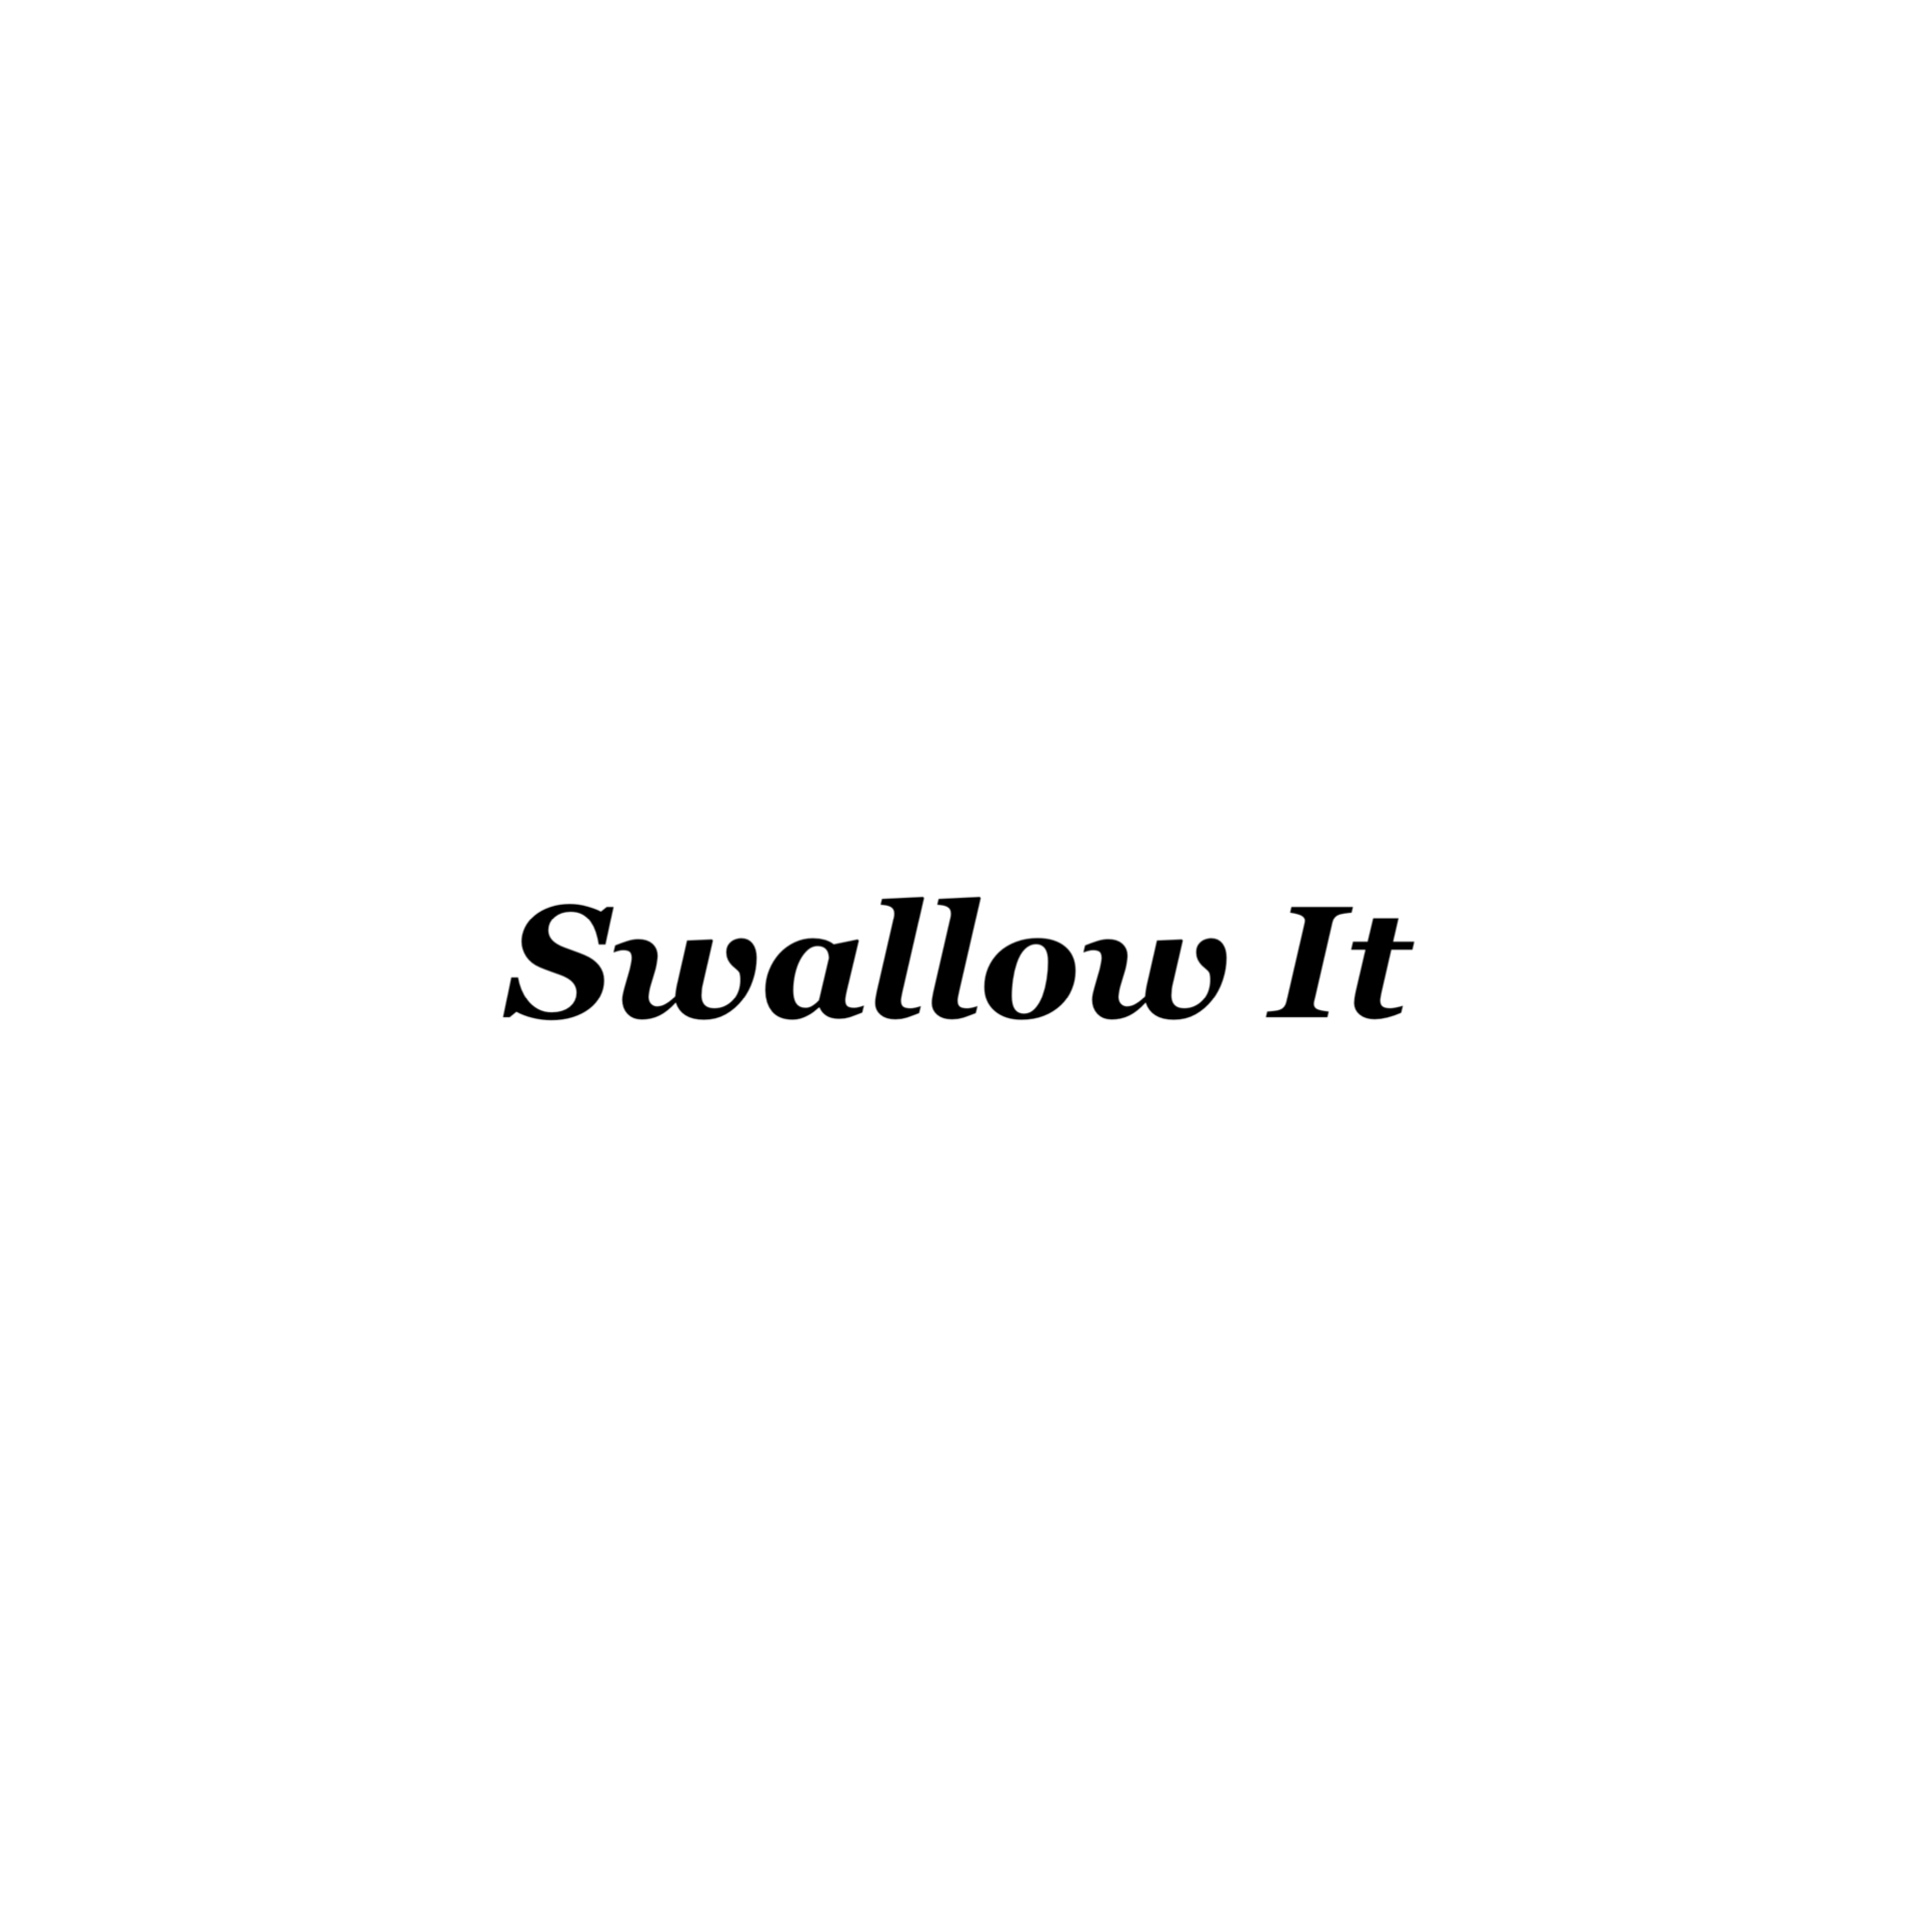 swallowit's podcast